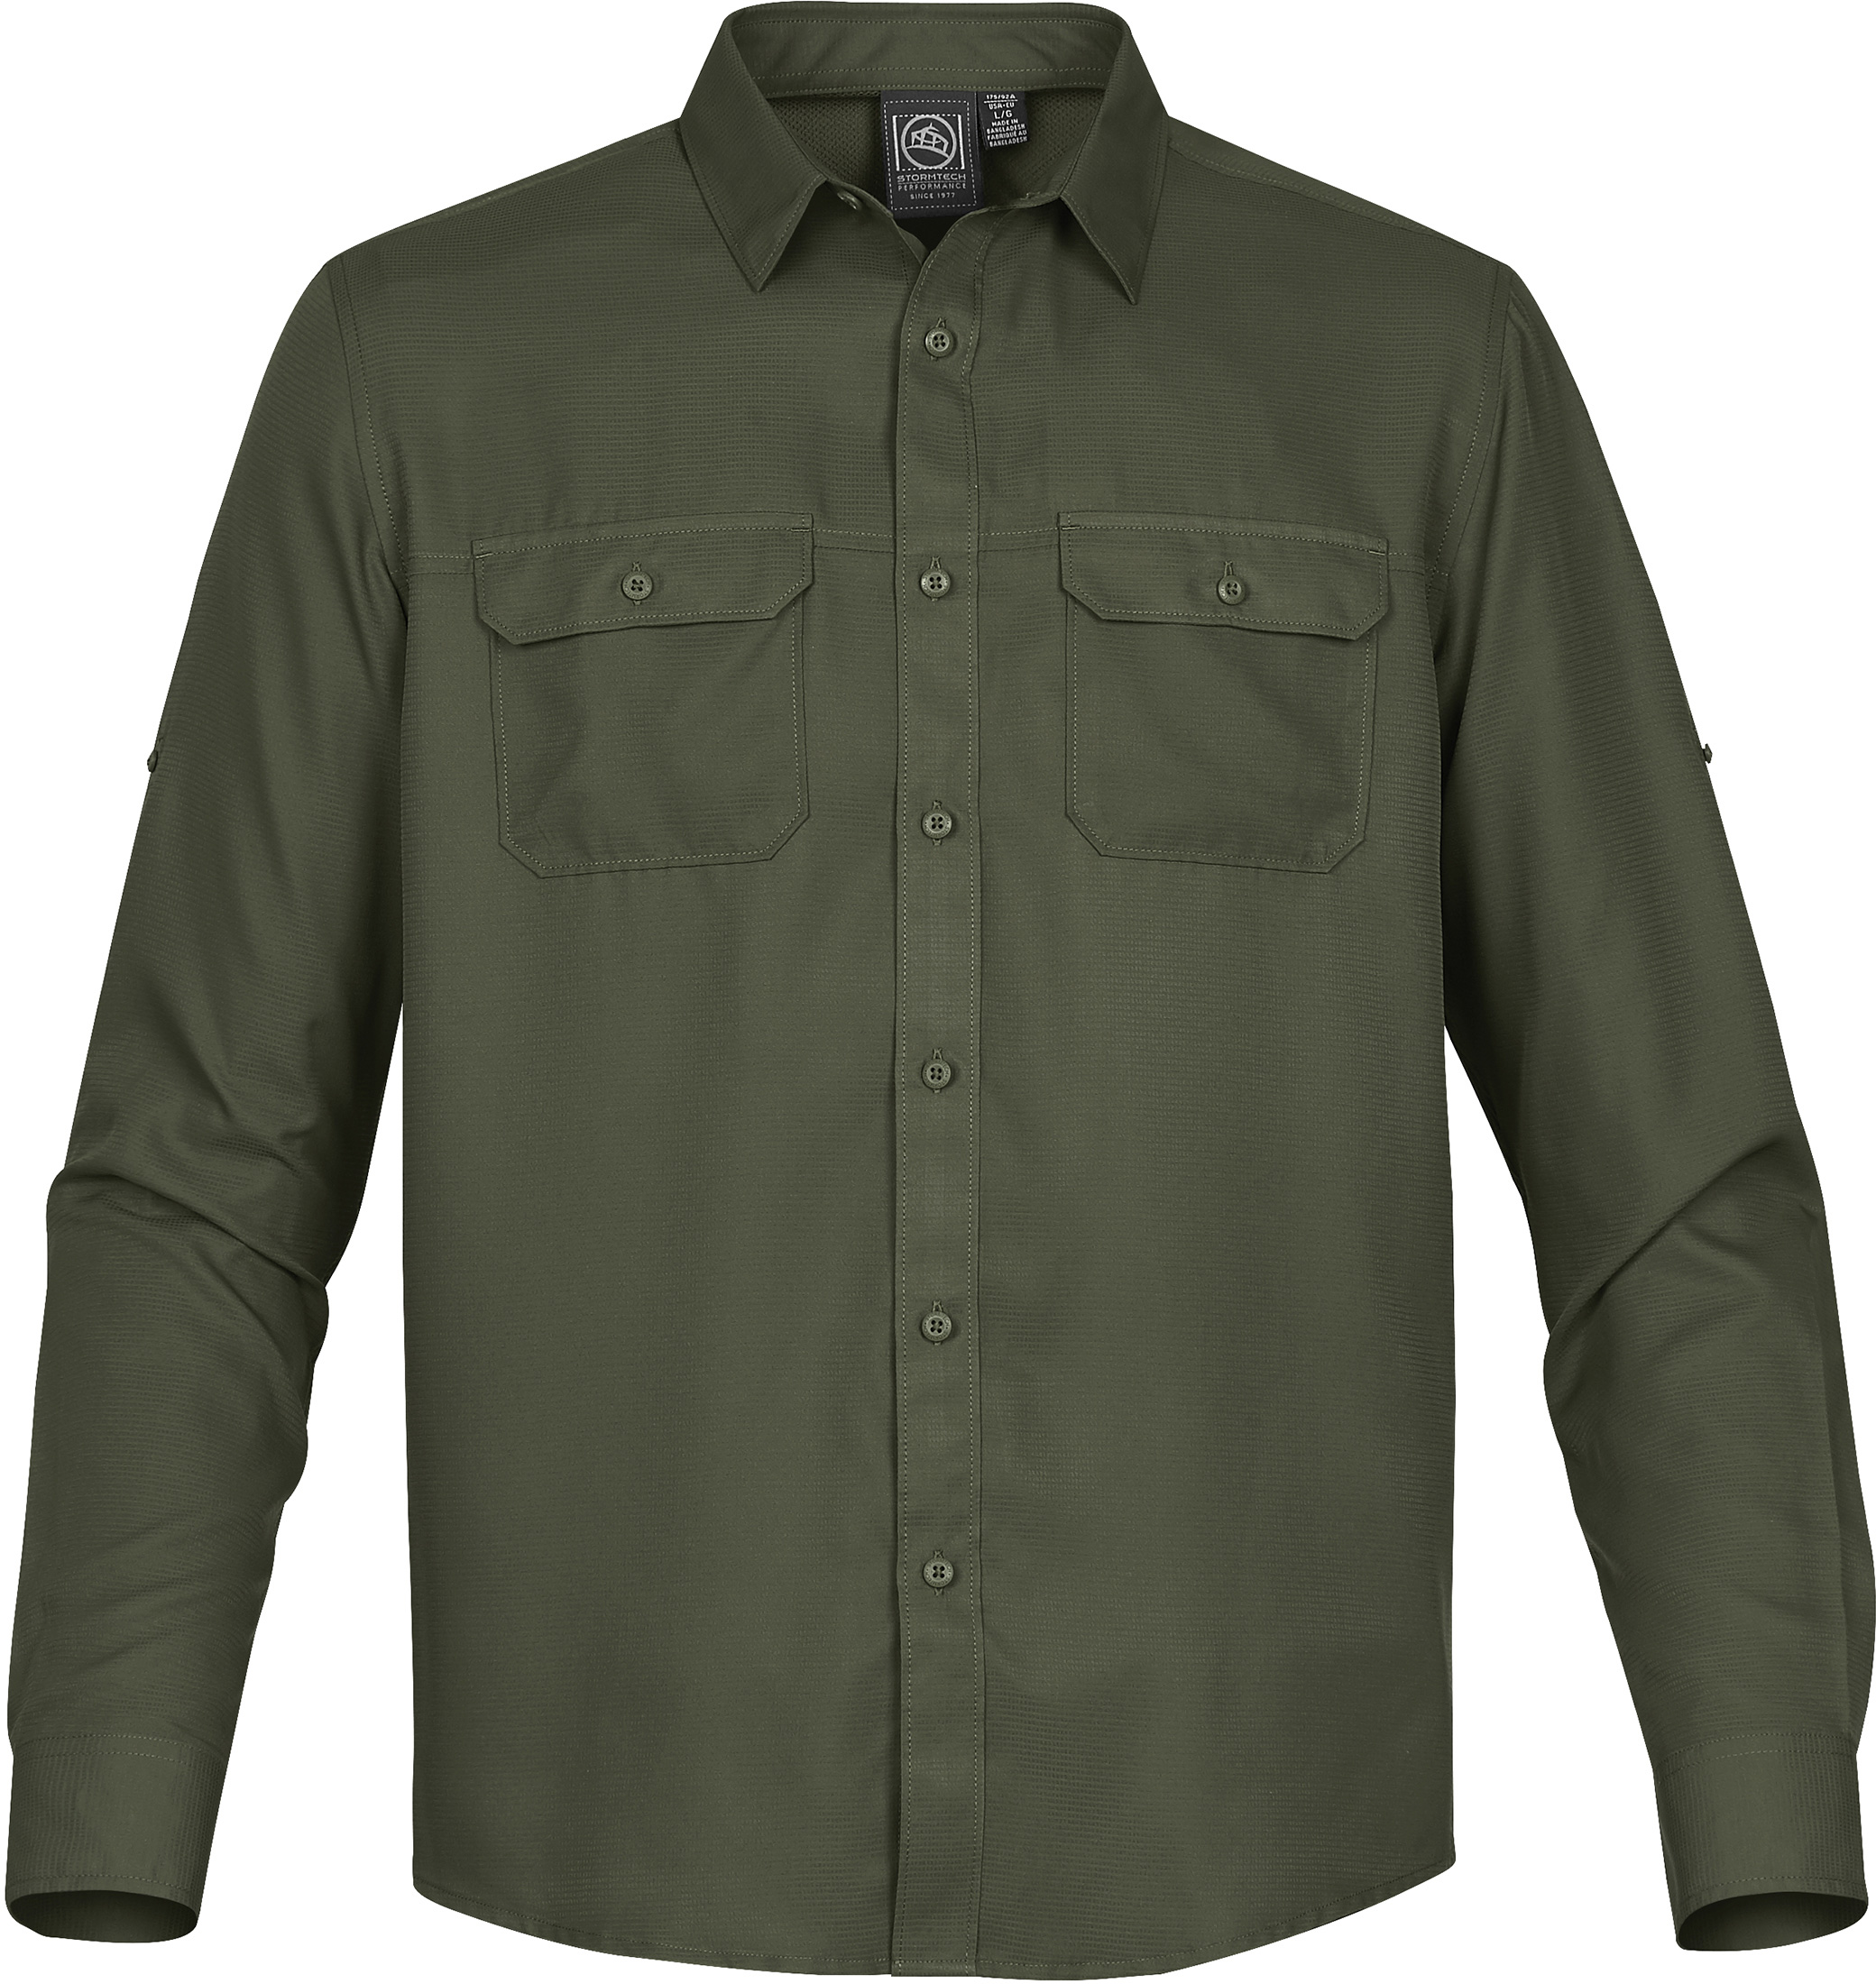 Stormtech SFS-1 - Men's Safari Shirt